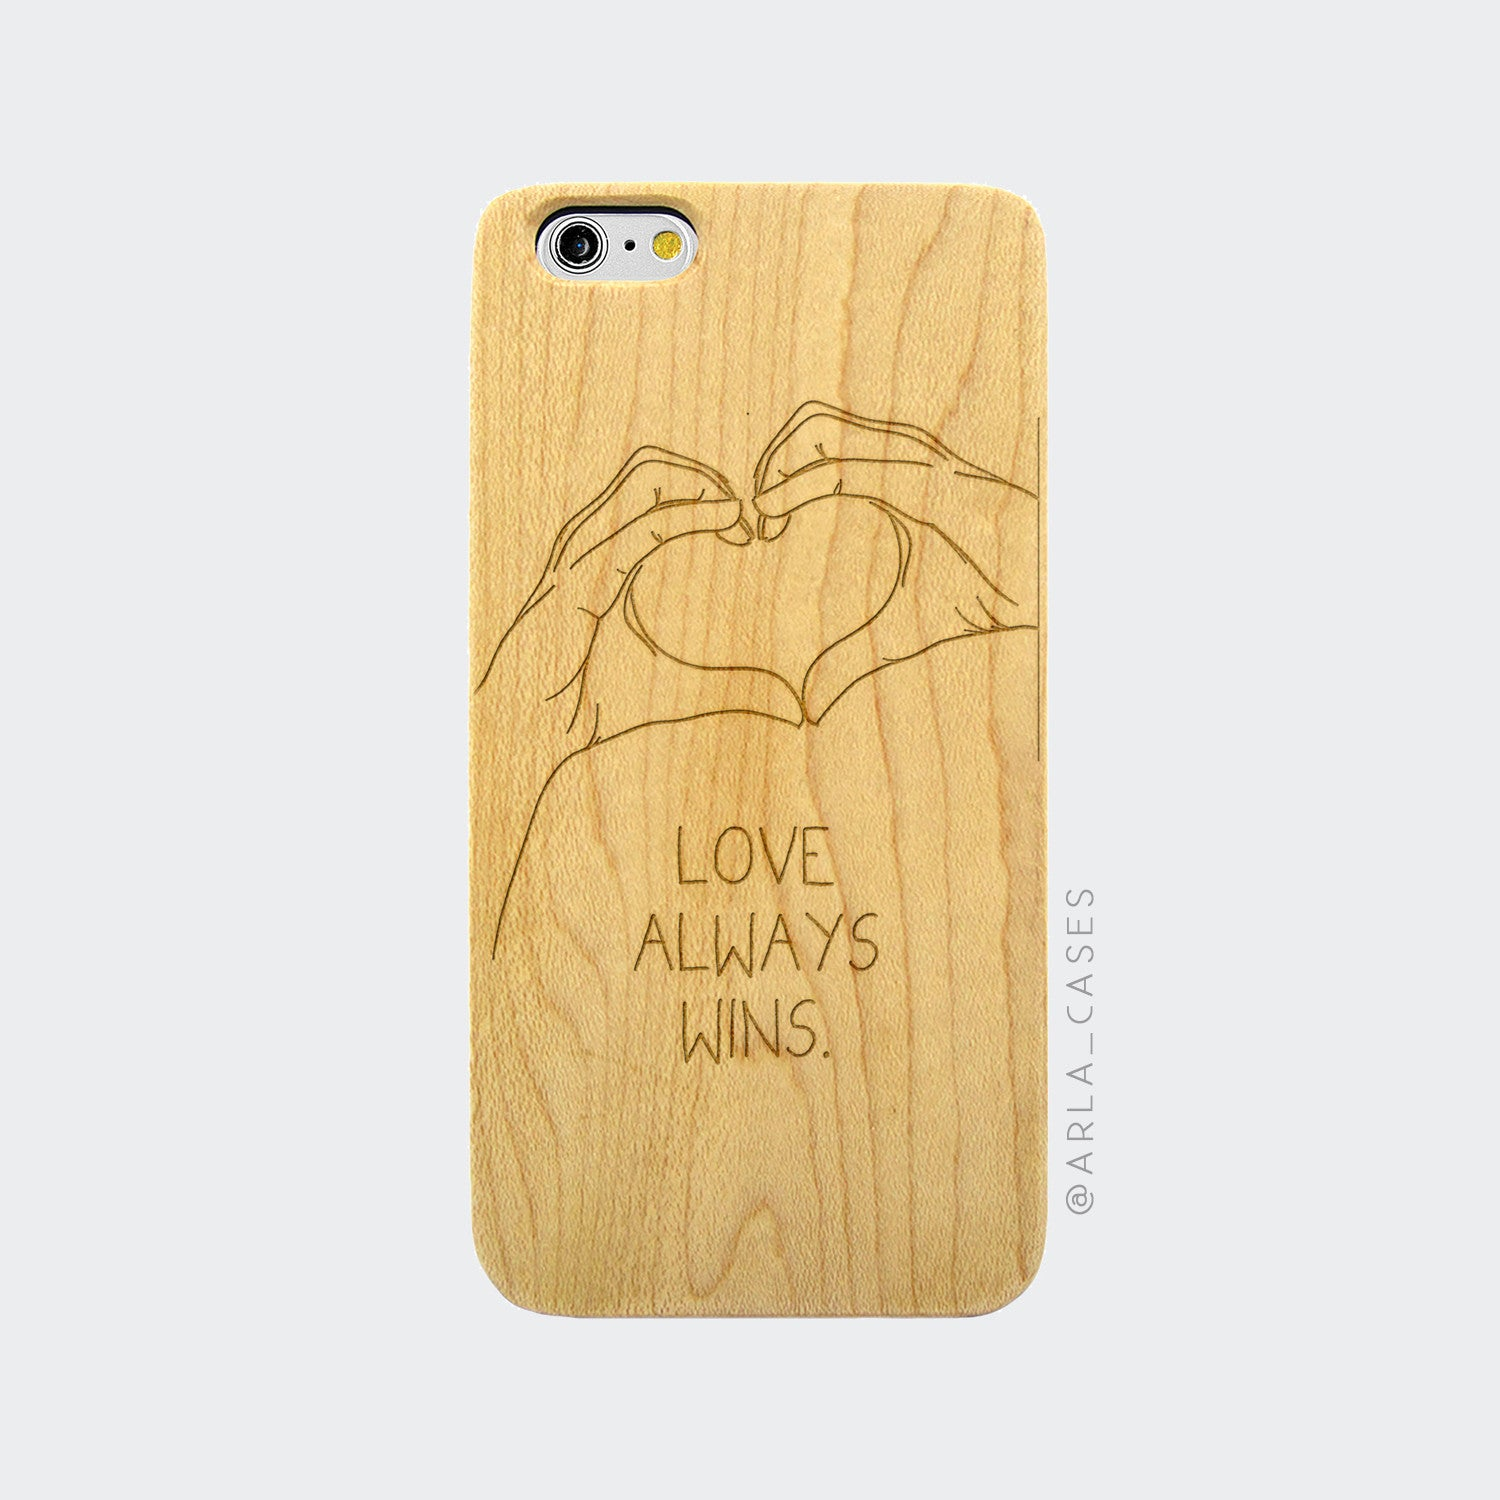 Love Always Wins Engraved on Wood iPhone Case